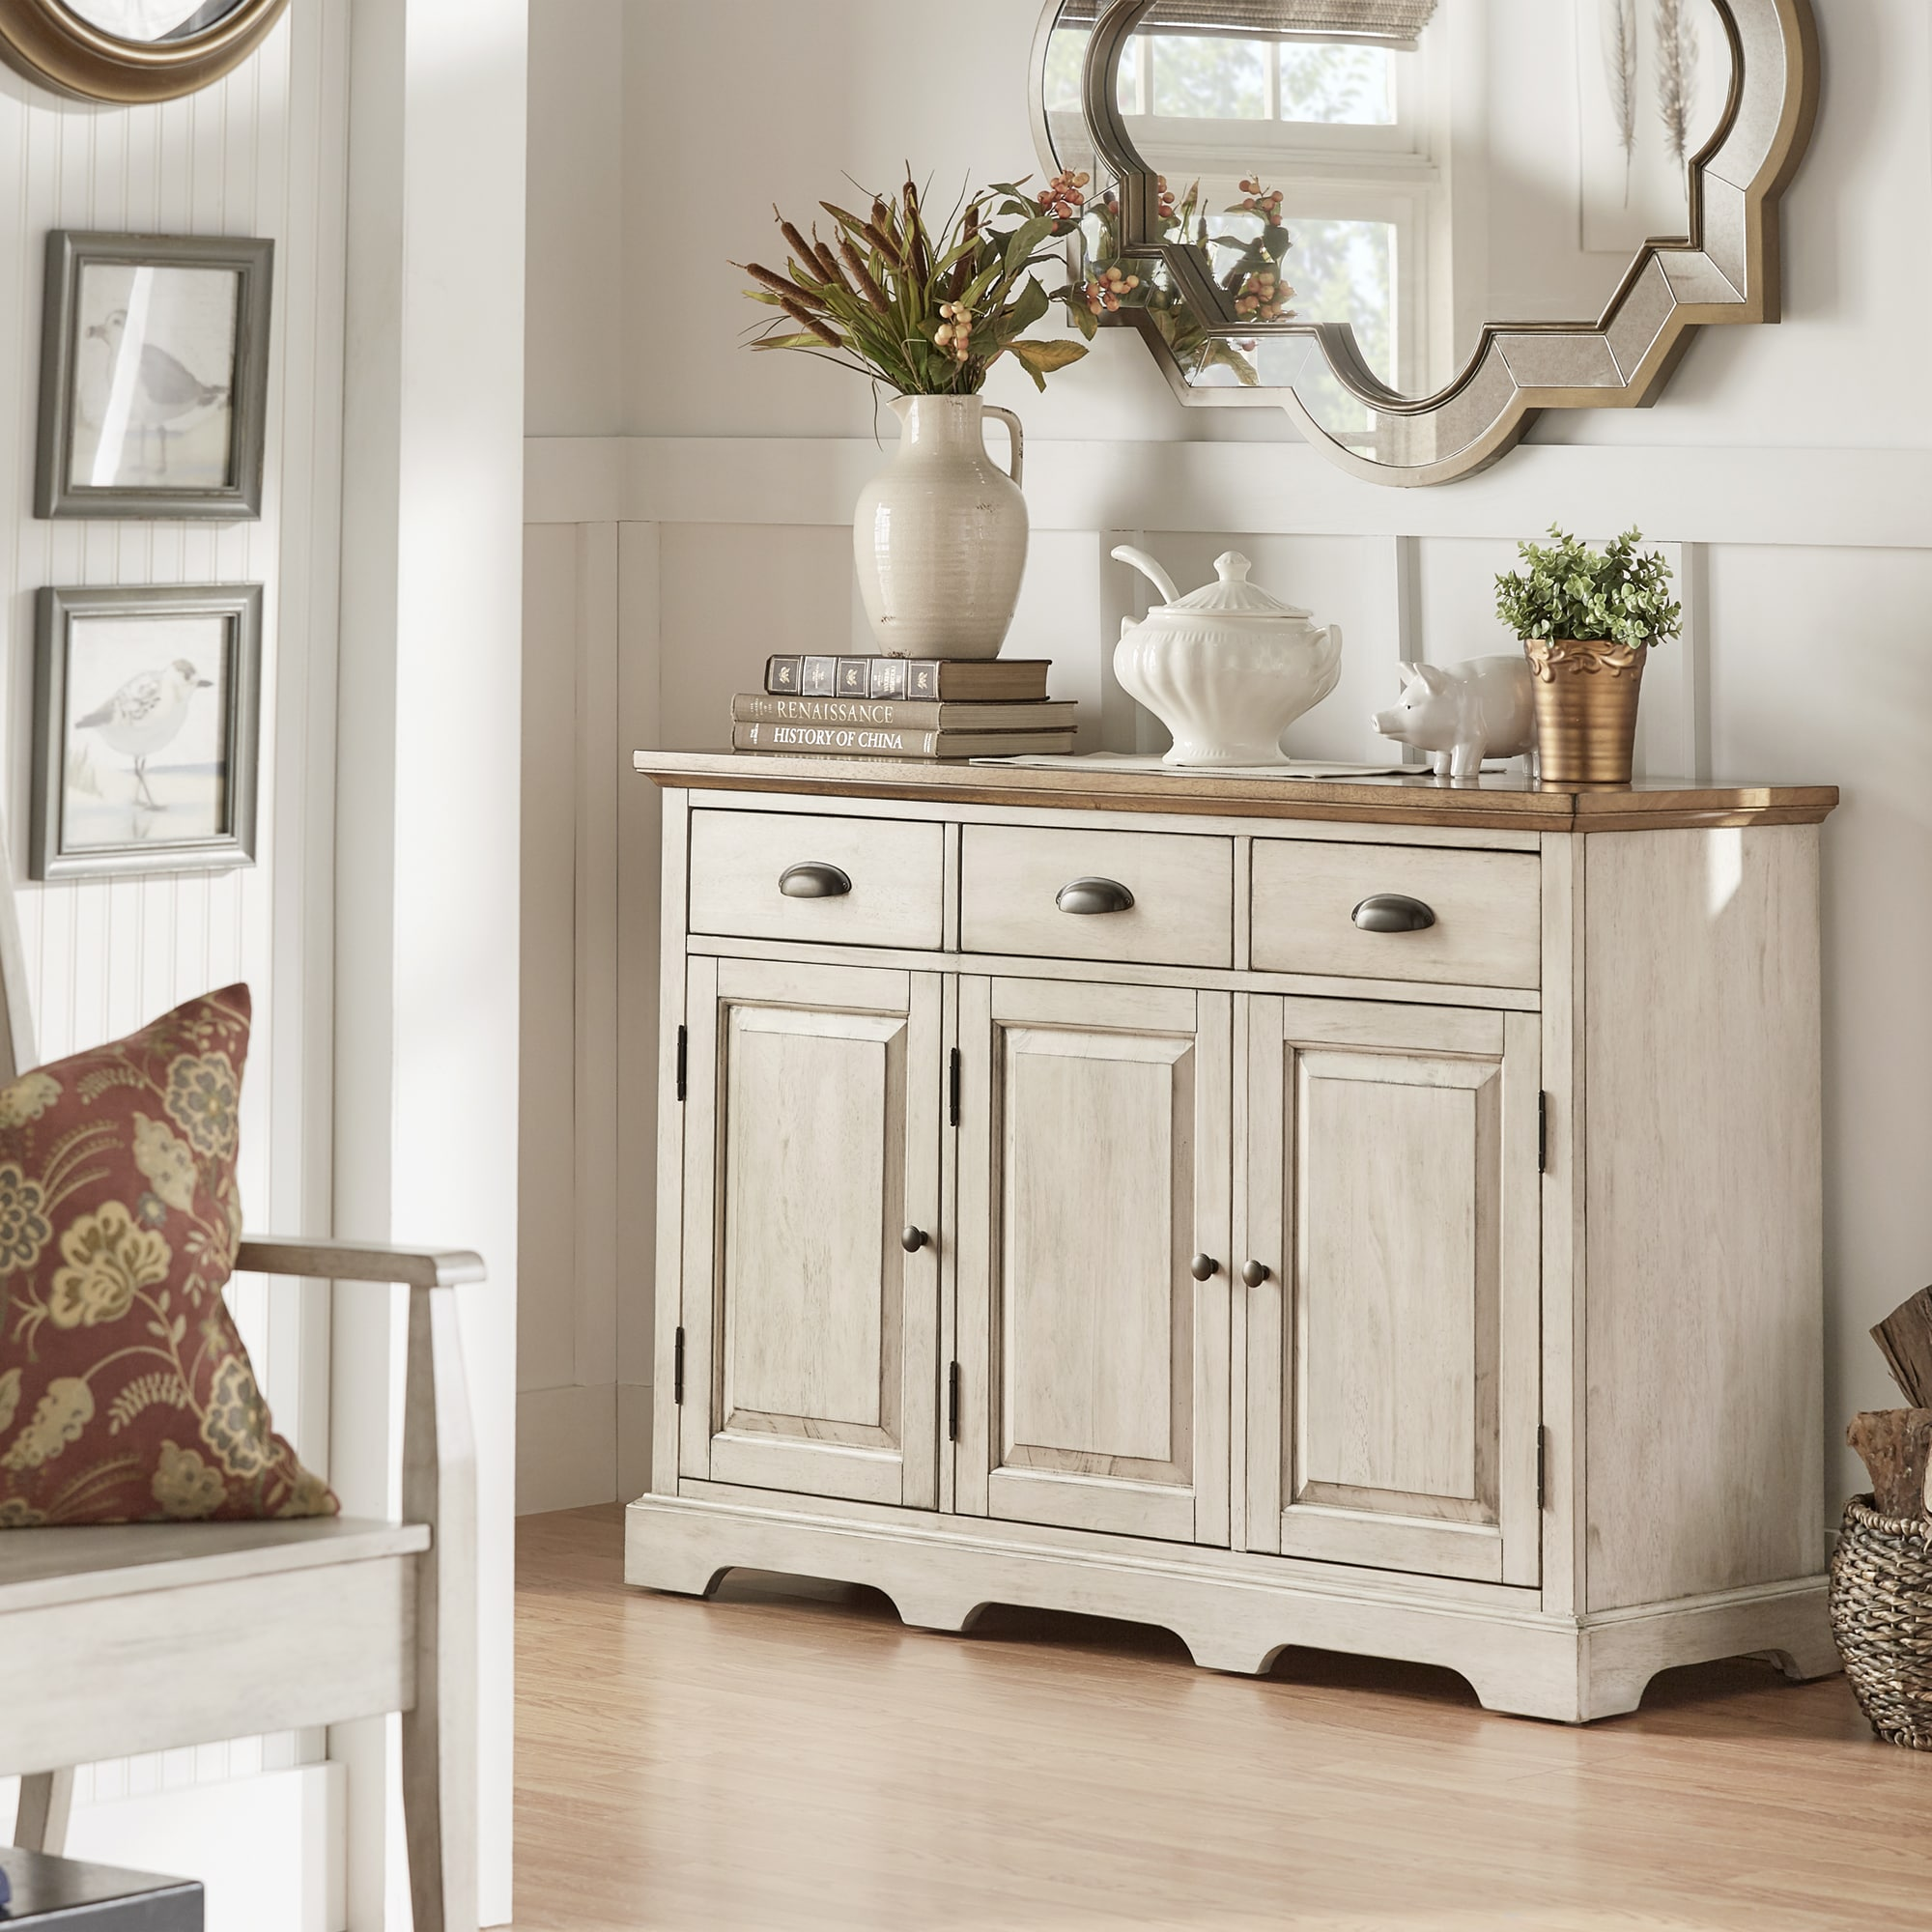 Inspire Q Eleanor Open Slf Two-Tone Wood Buffet Server by Classic Antique White Antique